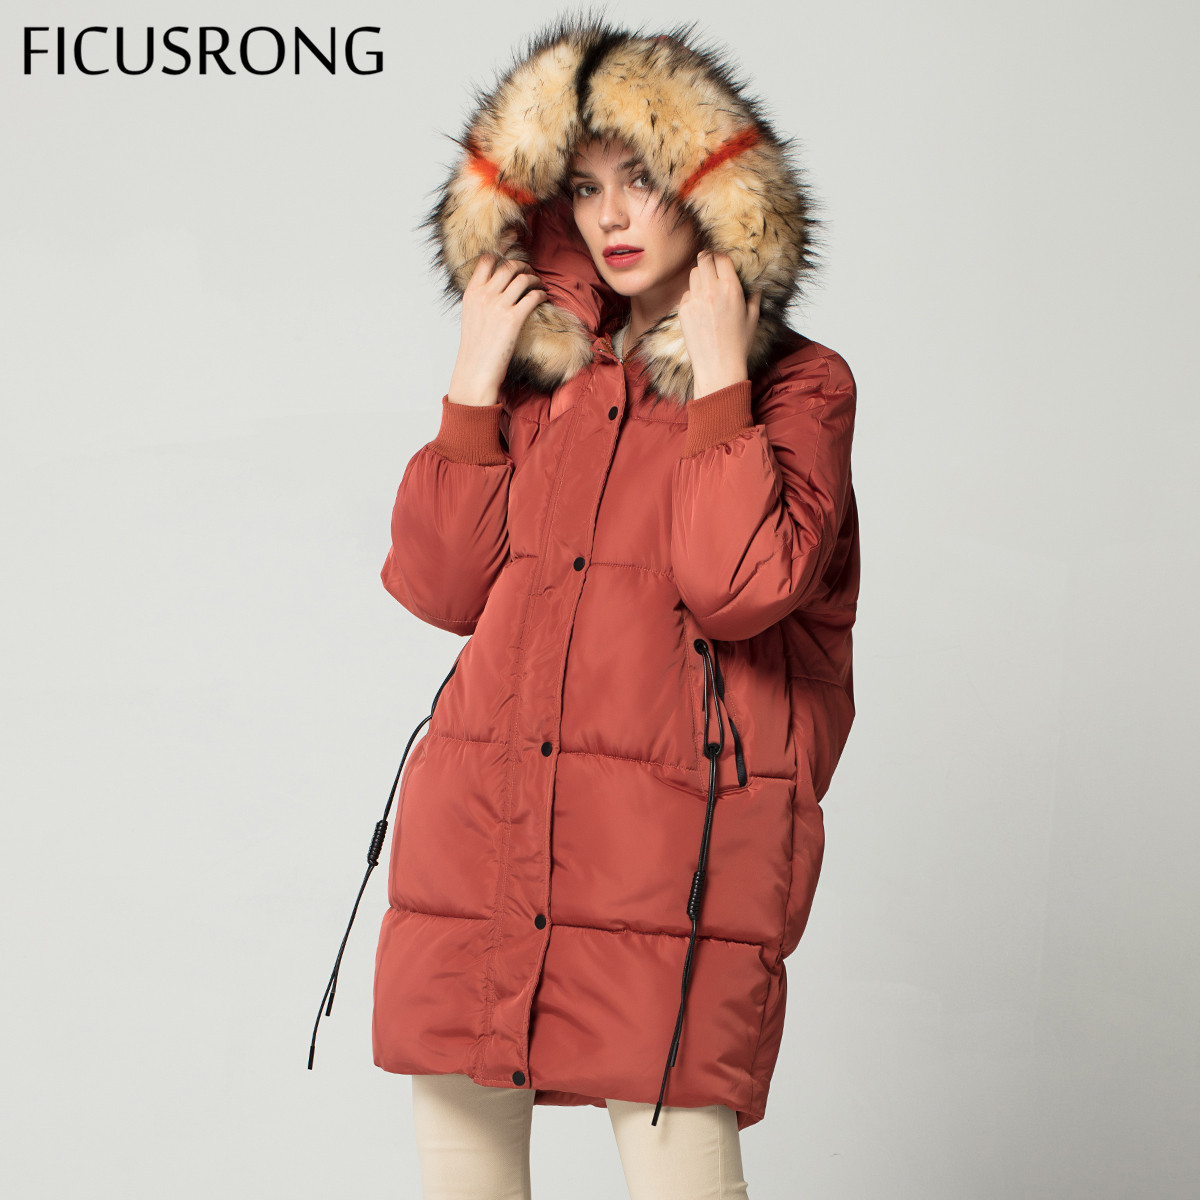 Fashion Plus Size Loose Warm Winter Jacket Women Hooded Fur Coat Down   Parkas   Long Cotton Padded Jacket Female FICUSRONG